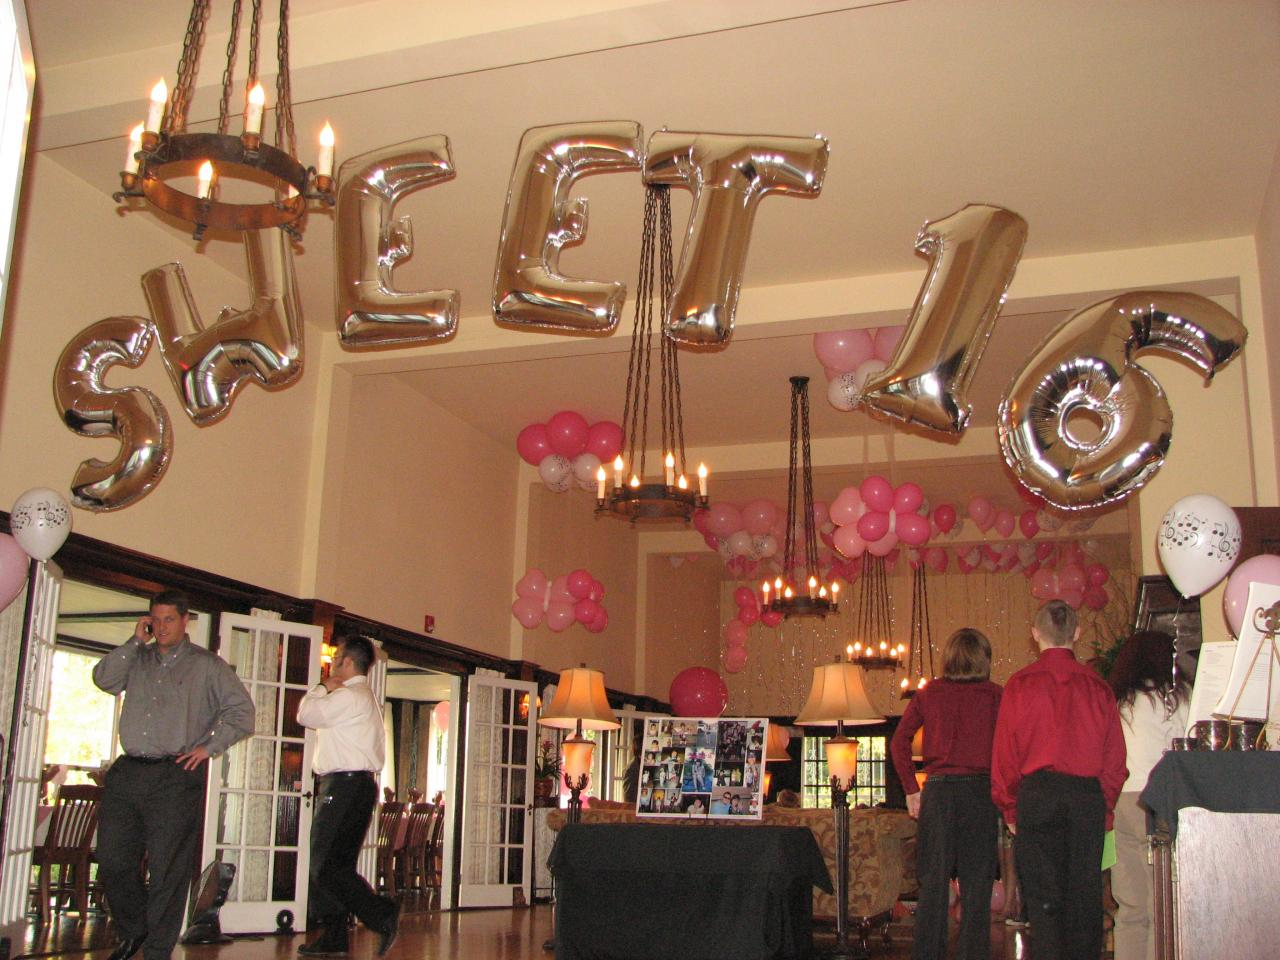 Bouquets balloons portland balloons wedding balloons for Balloon decoration ideas for sweet 16